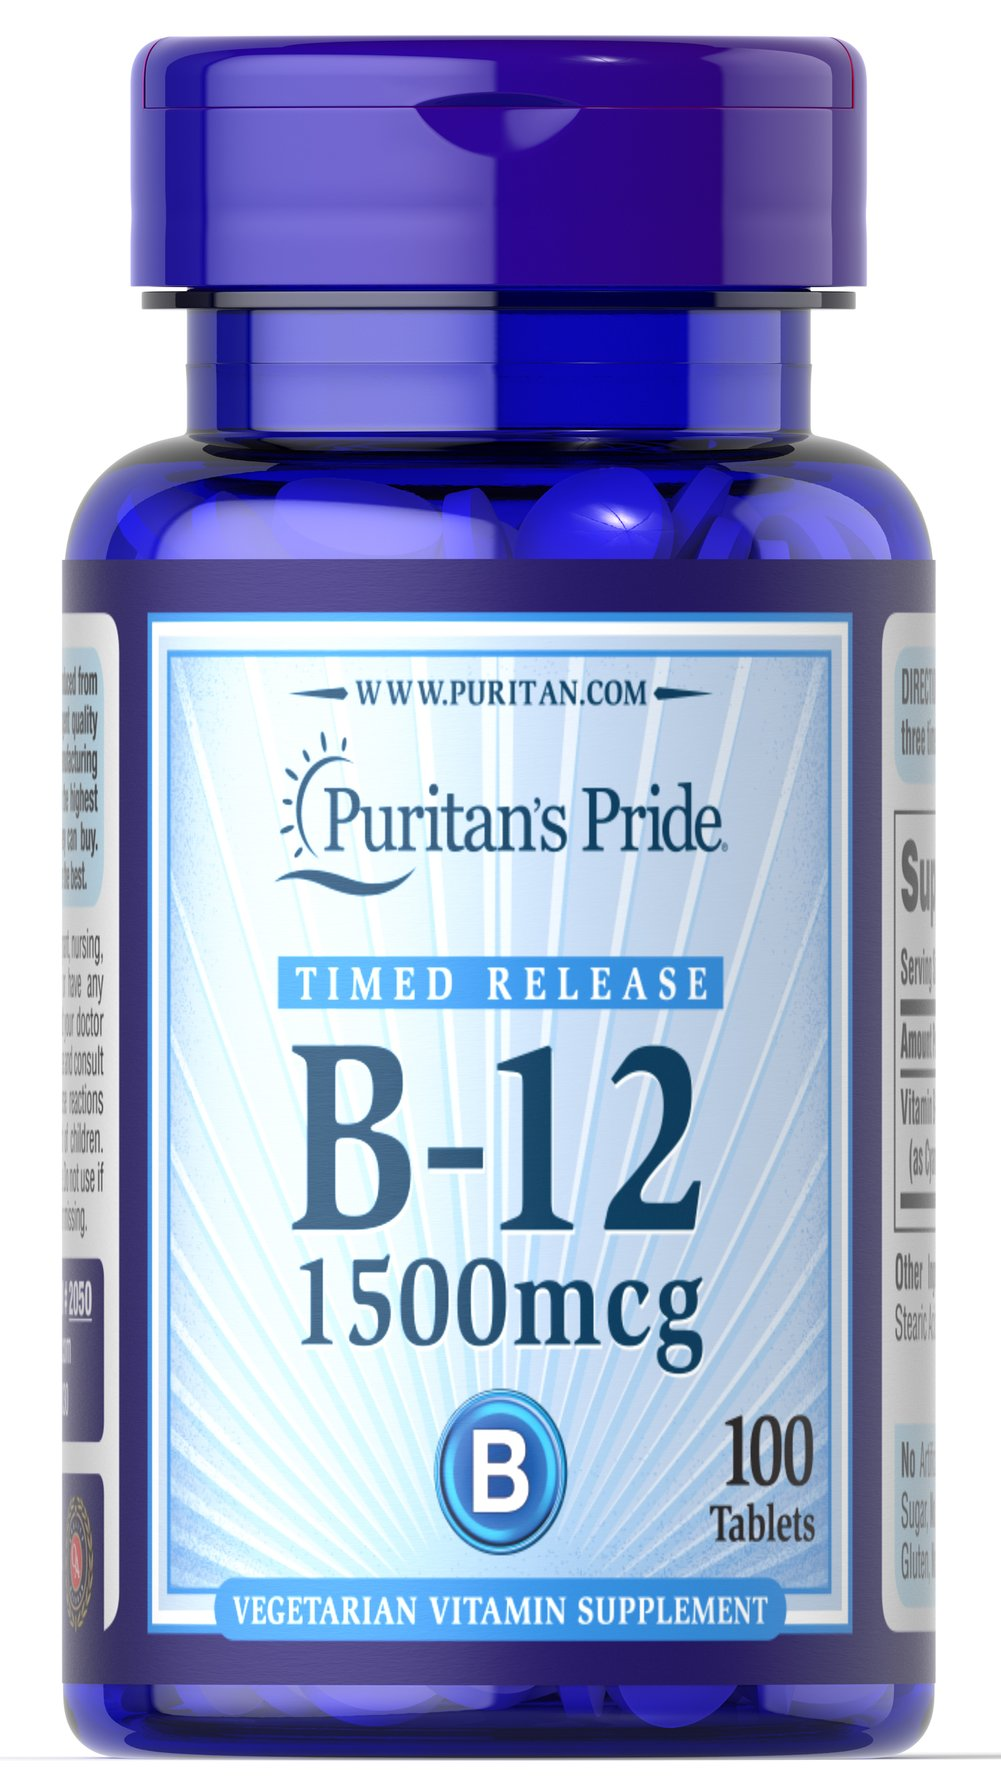 Vitamin B-12 1500 mcg Timed Release <p>Being your best just got easier! As you may know, the B Vitamins play many important roles in the body, including energy metabolism.** Specifically, the vitamin known as B-12 helps maintain proper metabolic functioning and circulatory health, and contributes to the health of the nervous system.** It also aids in normal development and the regeneration of red blood cells.**</p> 100 Tablets 1500 mcg